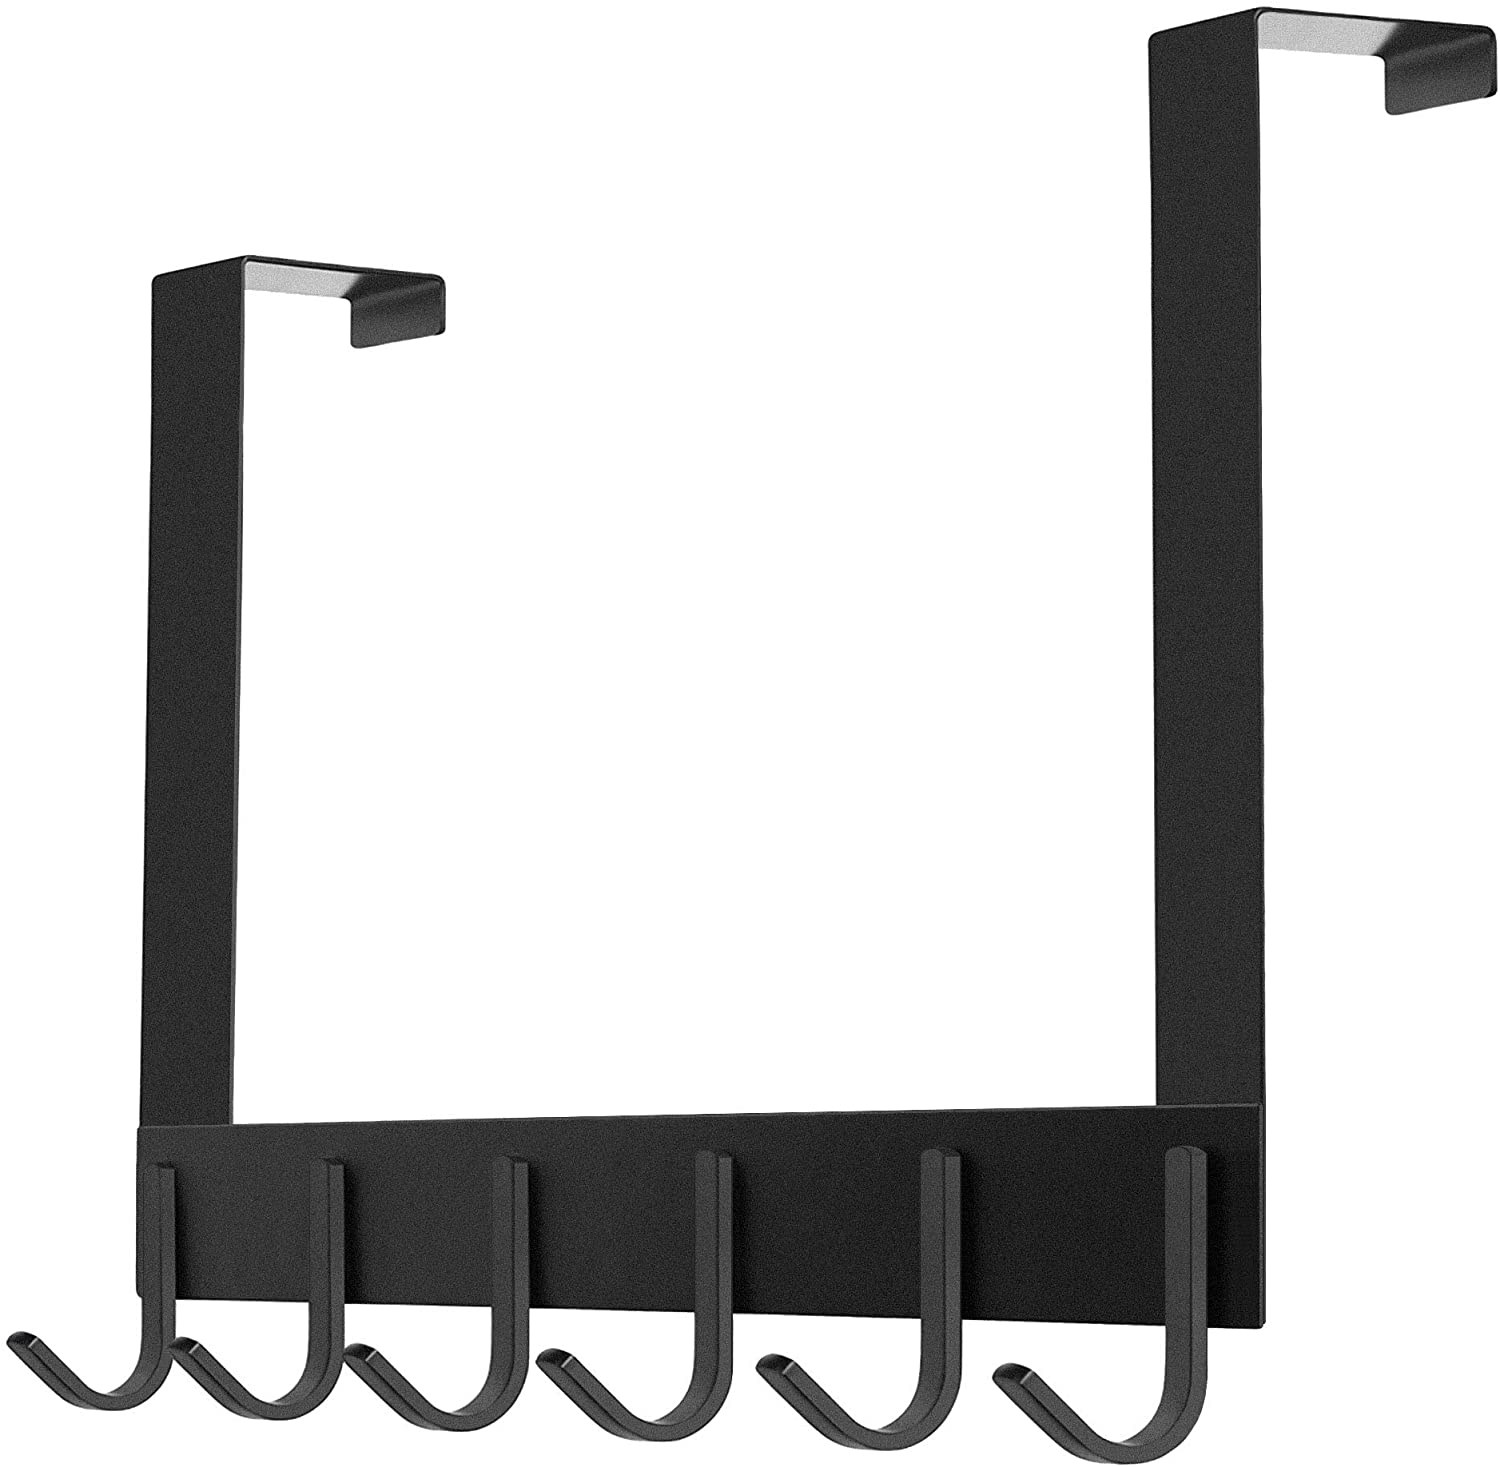 DOKU Over The Door Hook Heavy Max 48% OFF Duty Stainless Don't miss the campaign Ha Steel